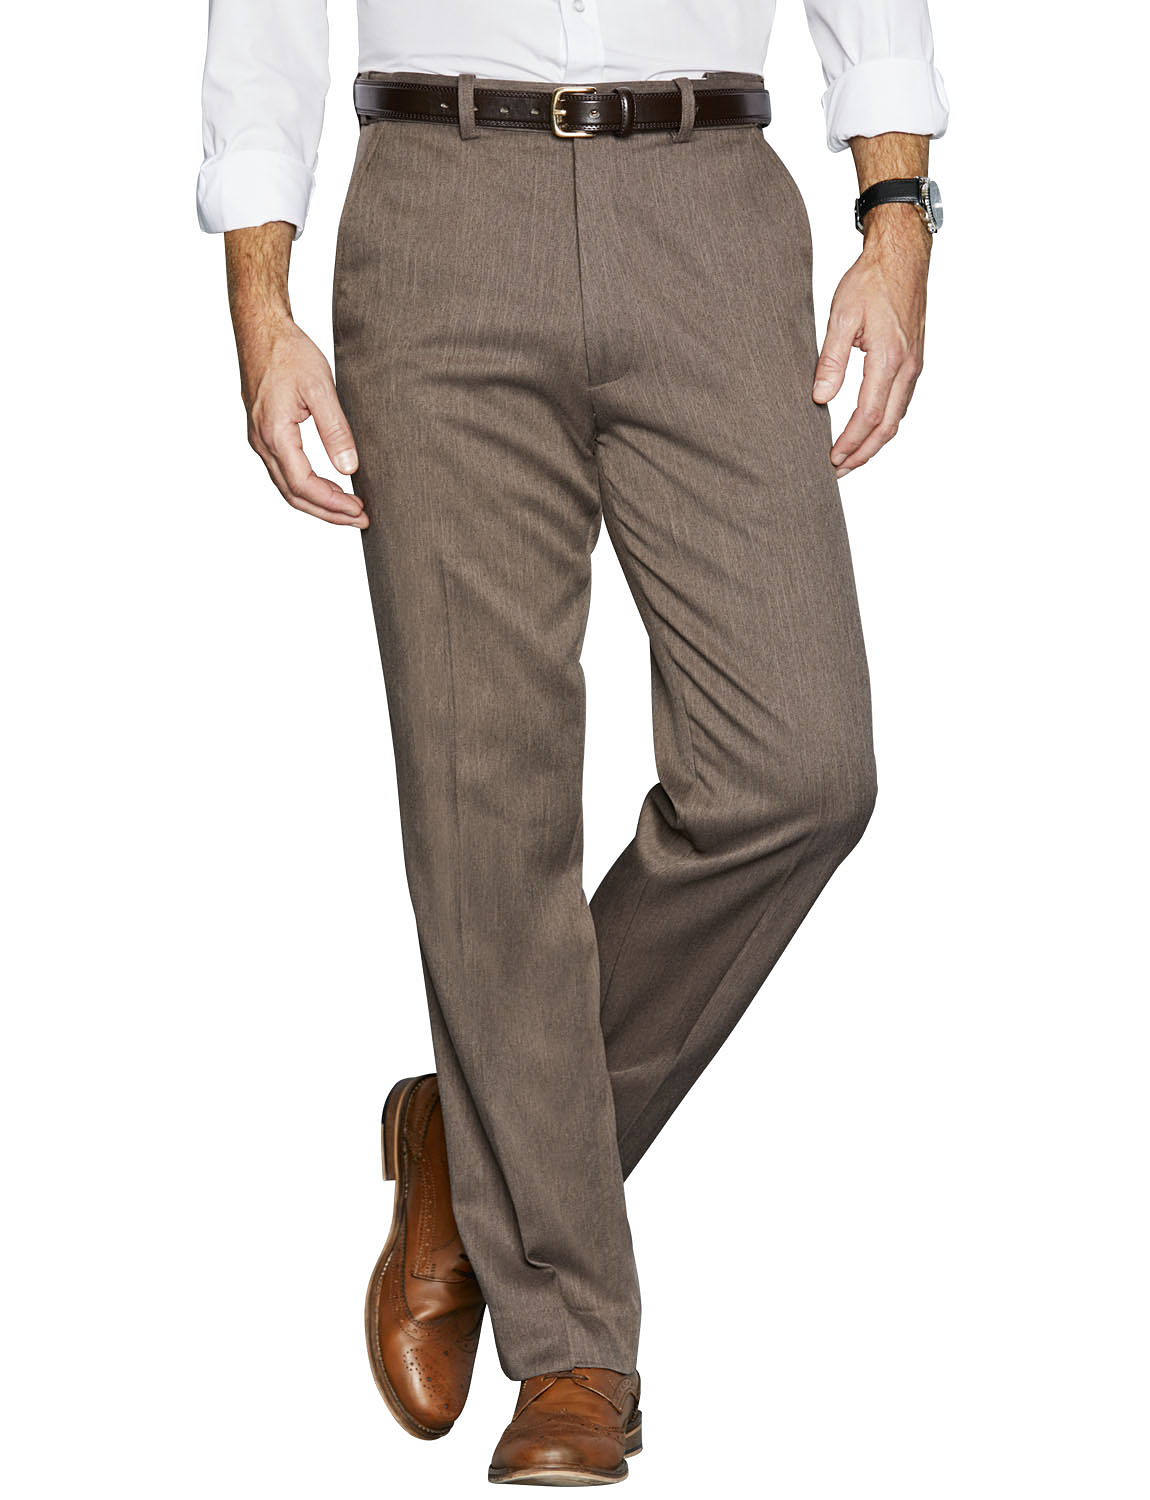 Mens High Waisted Lined Formal Trousers | EBay